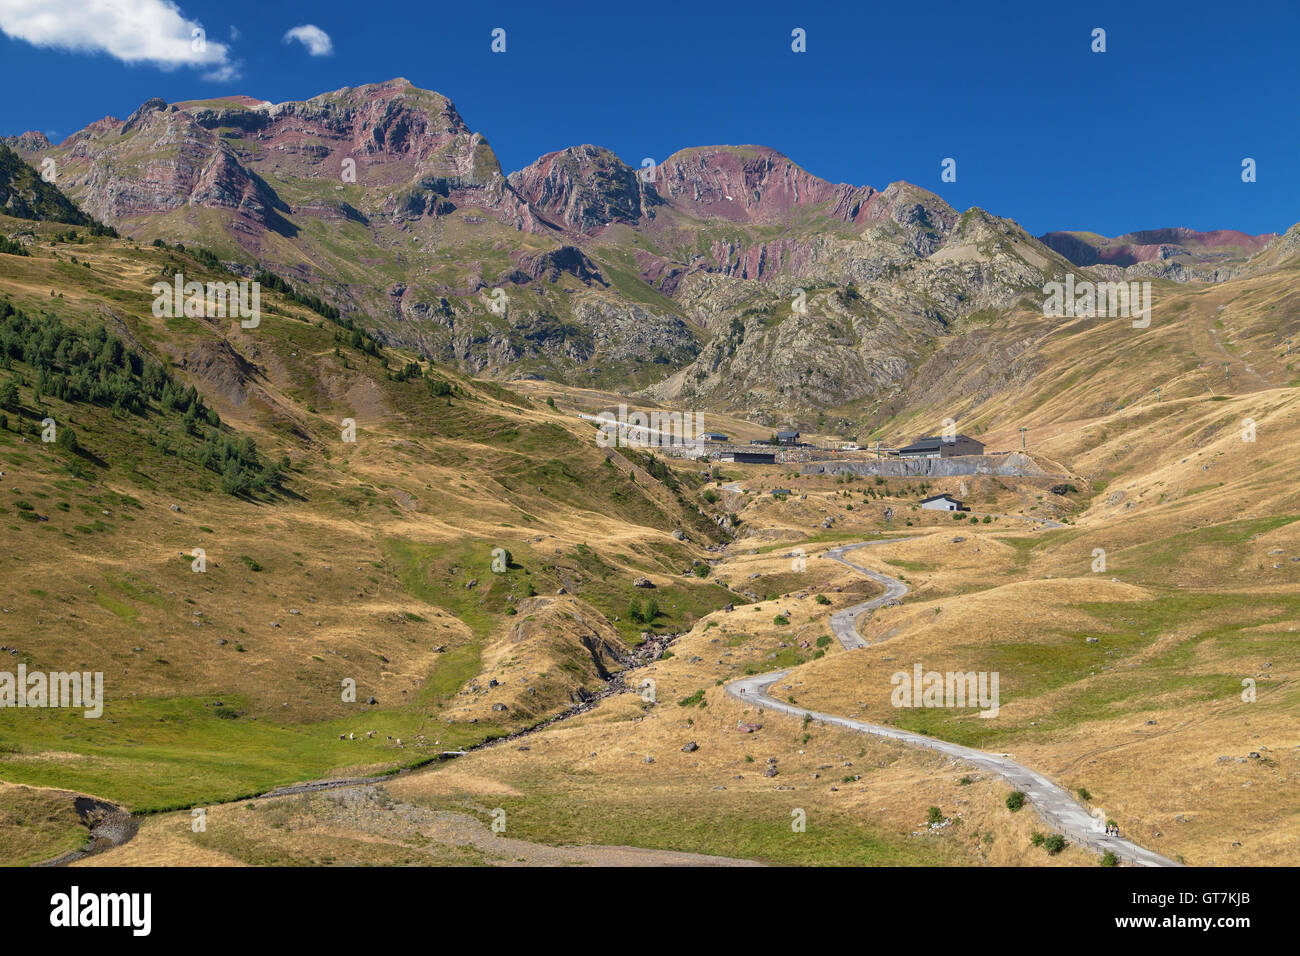 Formigal Ski Resort at summer in the Pyrenees of Huesca, Spain. - Stock Image